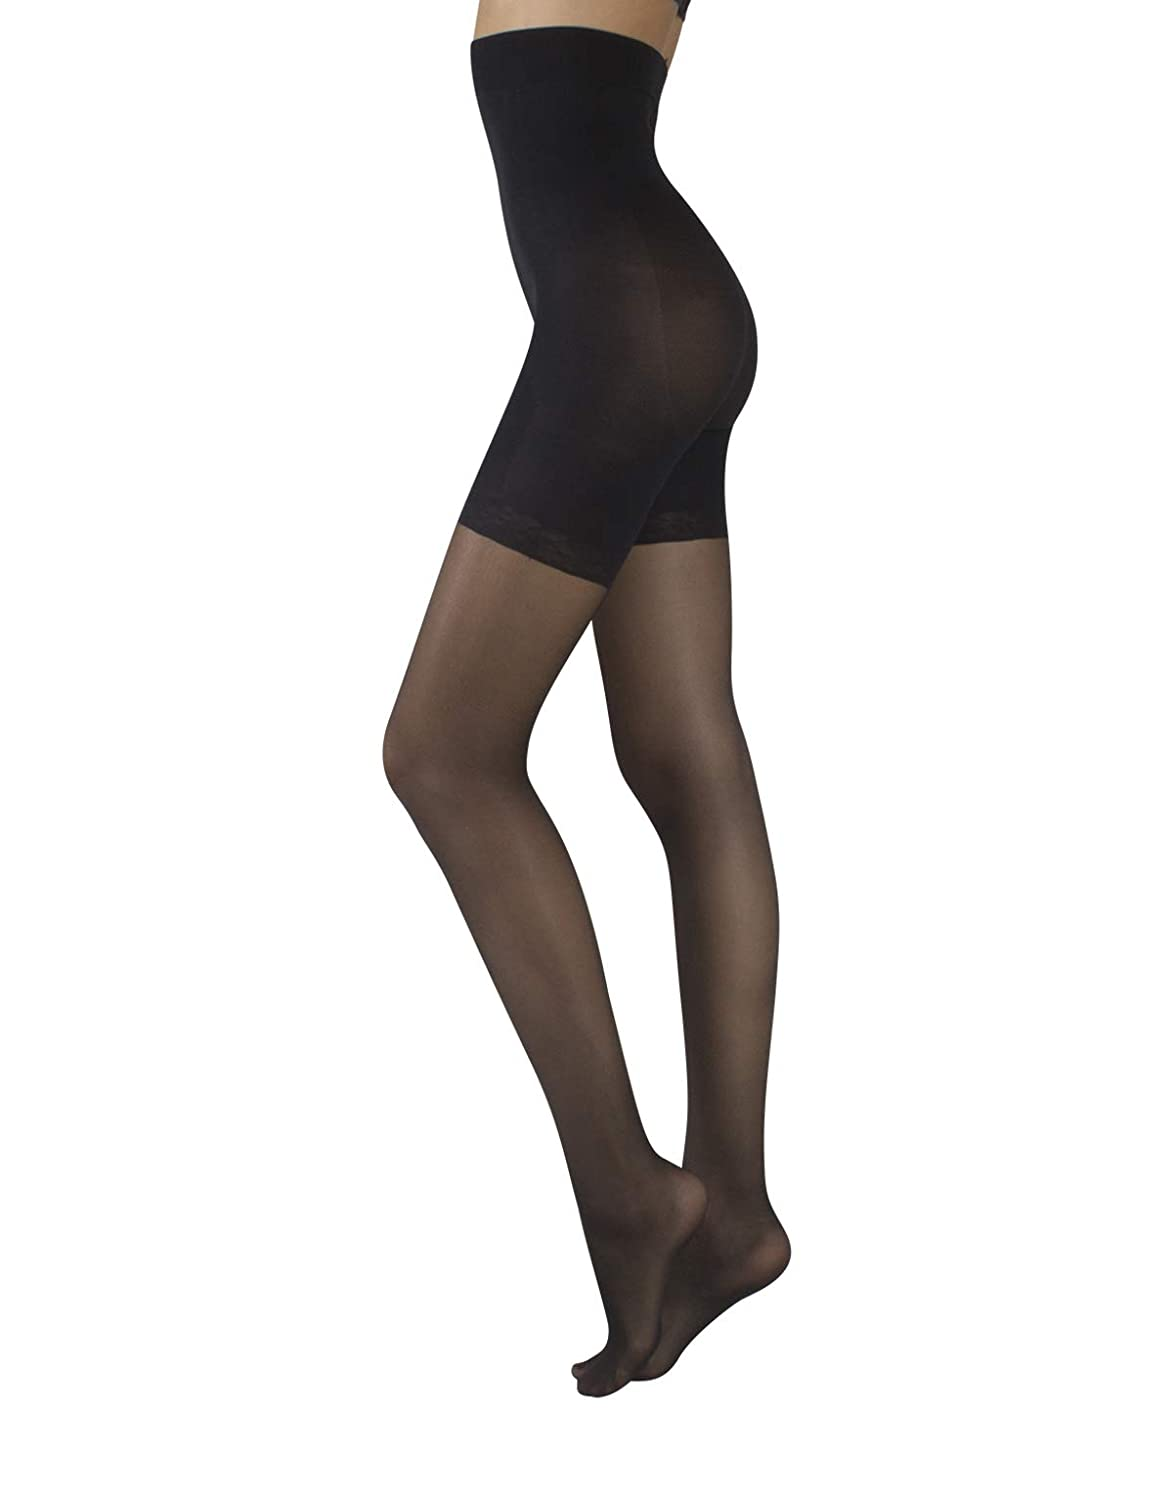 437433f94270e 20 DEN SHEER HIGH WAIST SHAPING TIGHTS - Woman High Waist tights with Push  Up, Control Body and Middle Leg-Relaxing Effect. Sheer 20 dernier pantyhose  ...